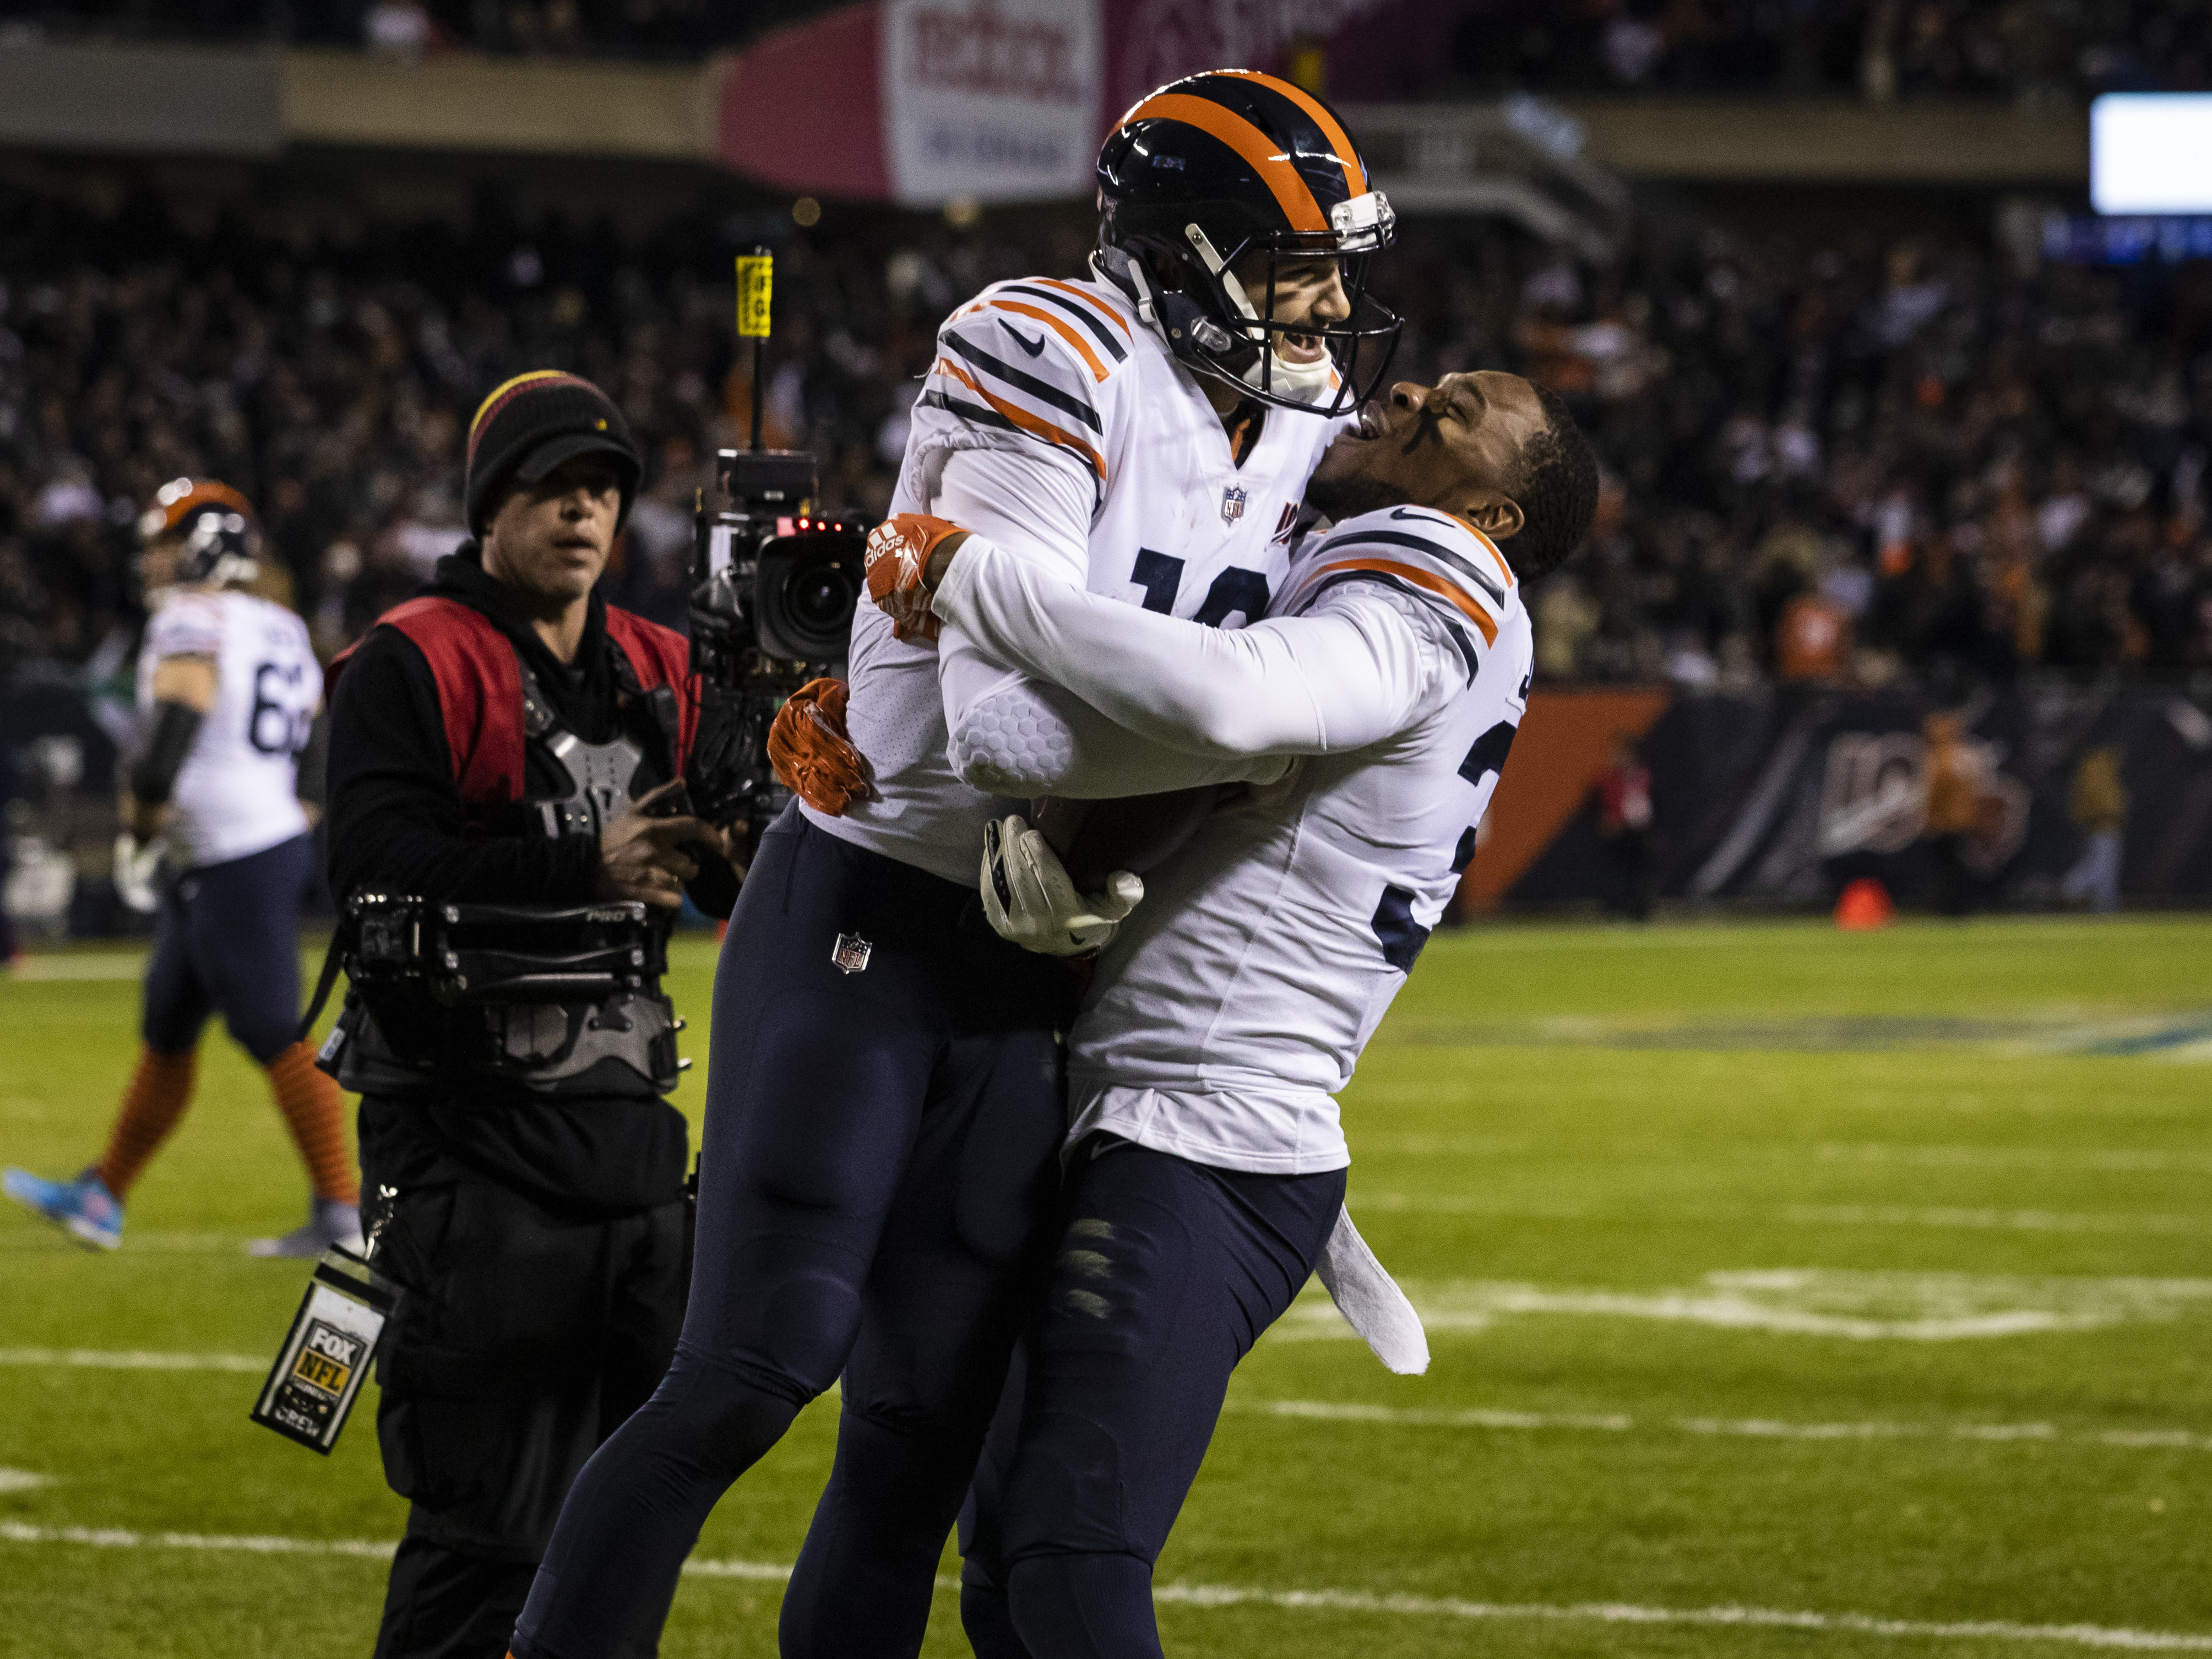 Bears quarterback Mitch Trubisky celebrates with safety Eddie Jackson after a 23-yard touchdown during the fourth quarter Thursday night against the Dallas Cowboys at Soldier Field.